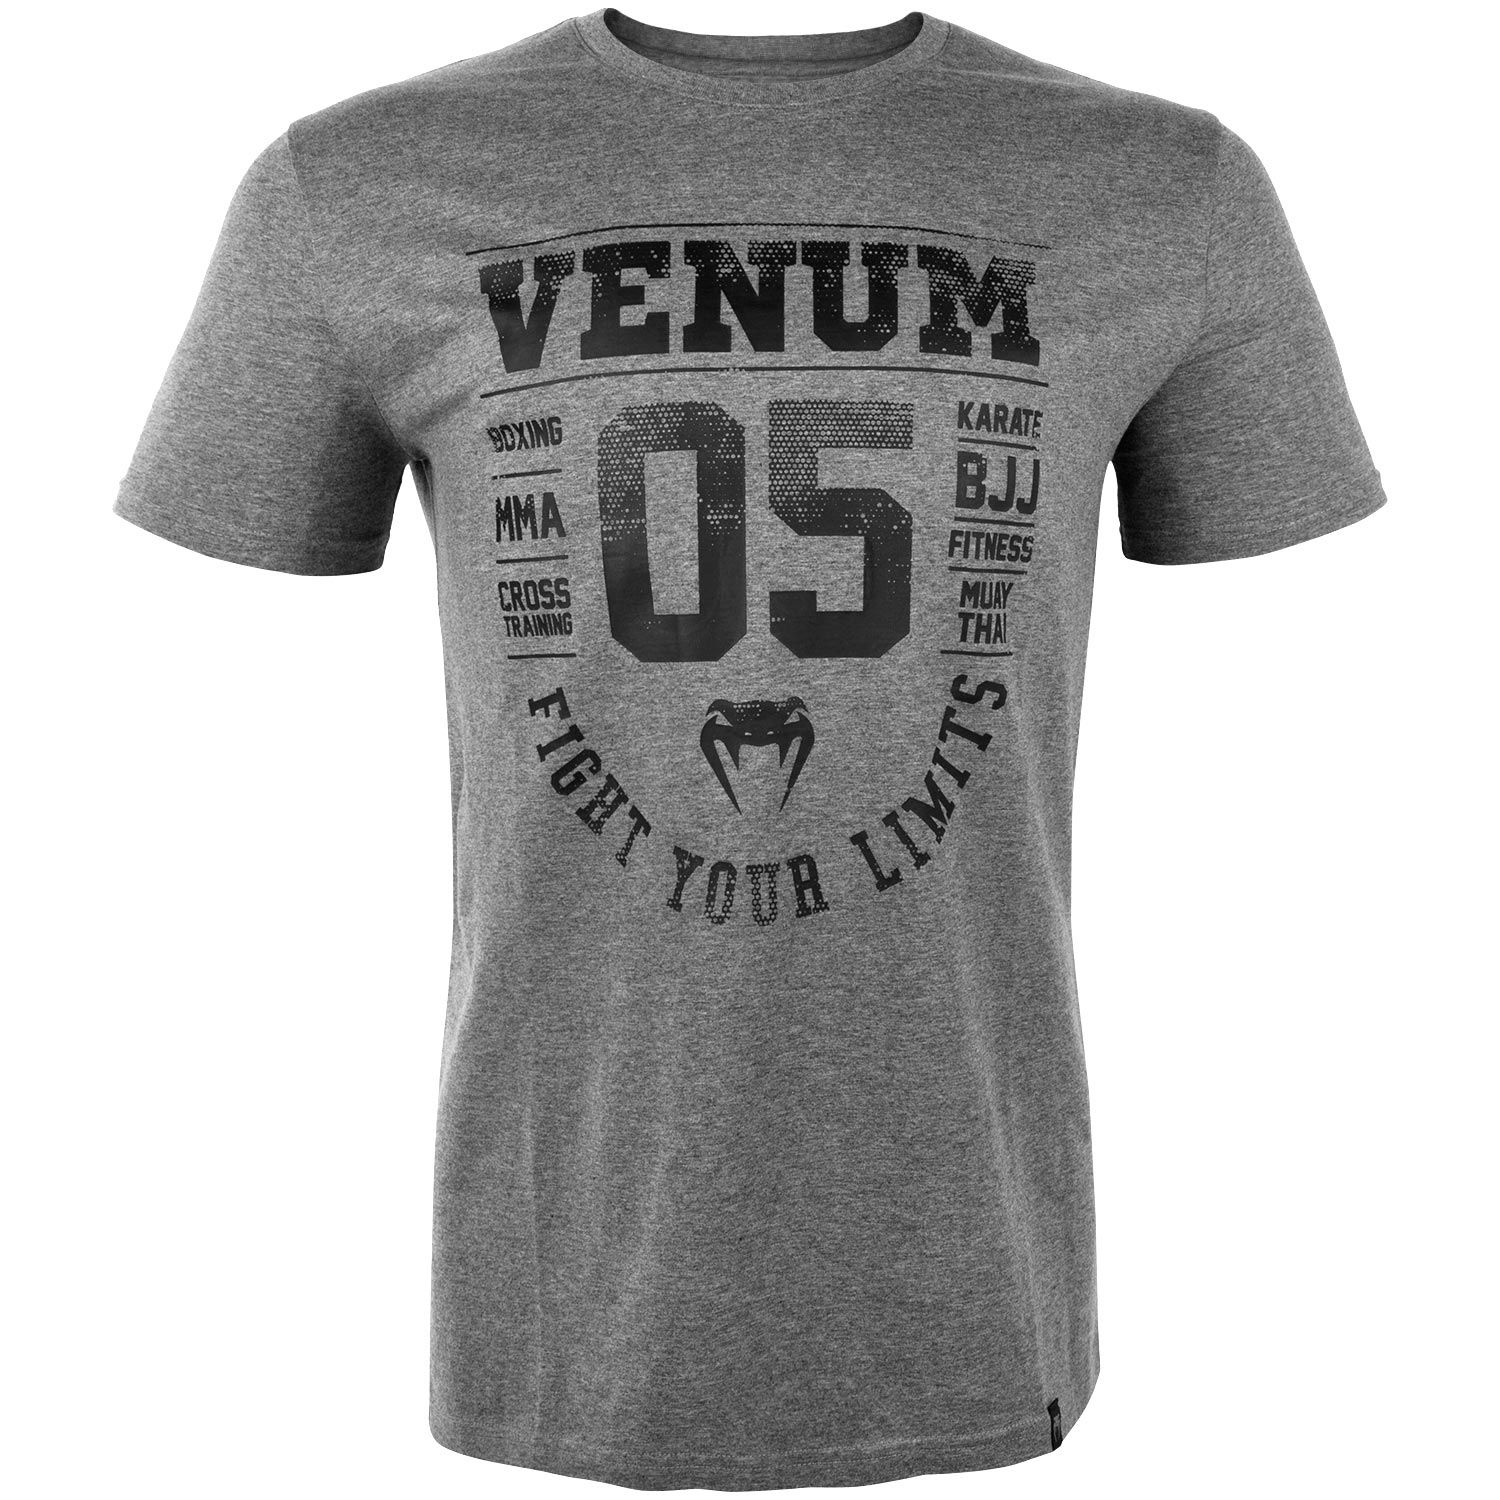 Venum Origins T-Shirt